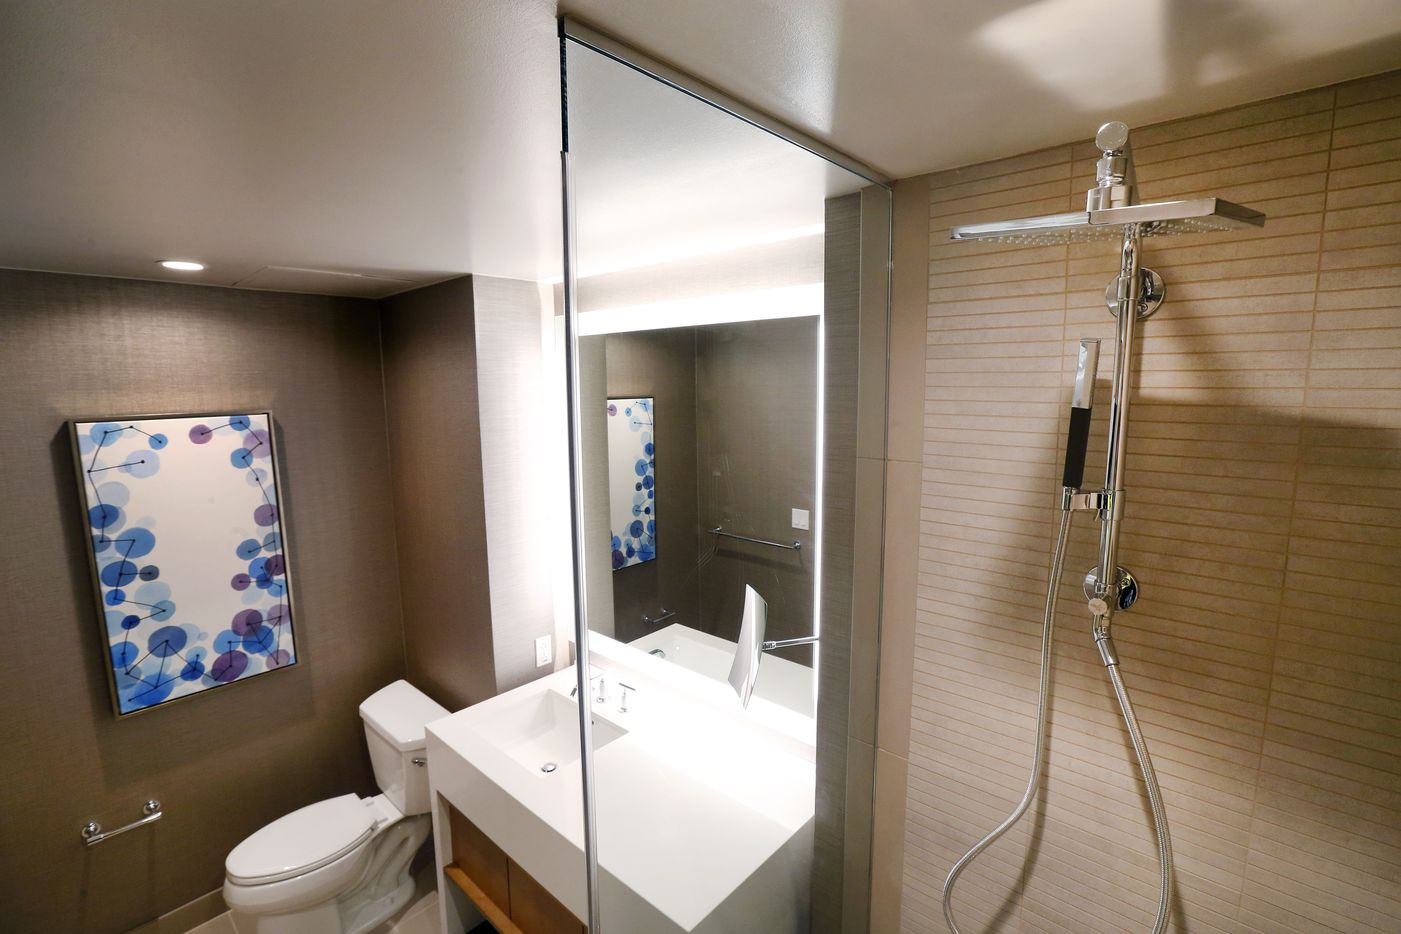 A bathroom and walk-in shower in a guest room in The Westin Irving Convention Center at Las Colinas.